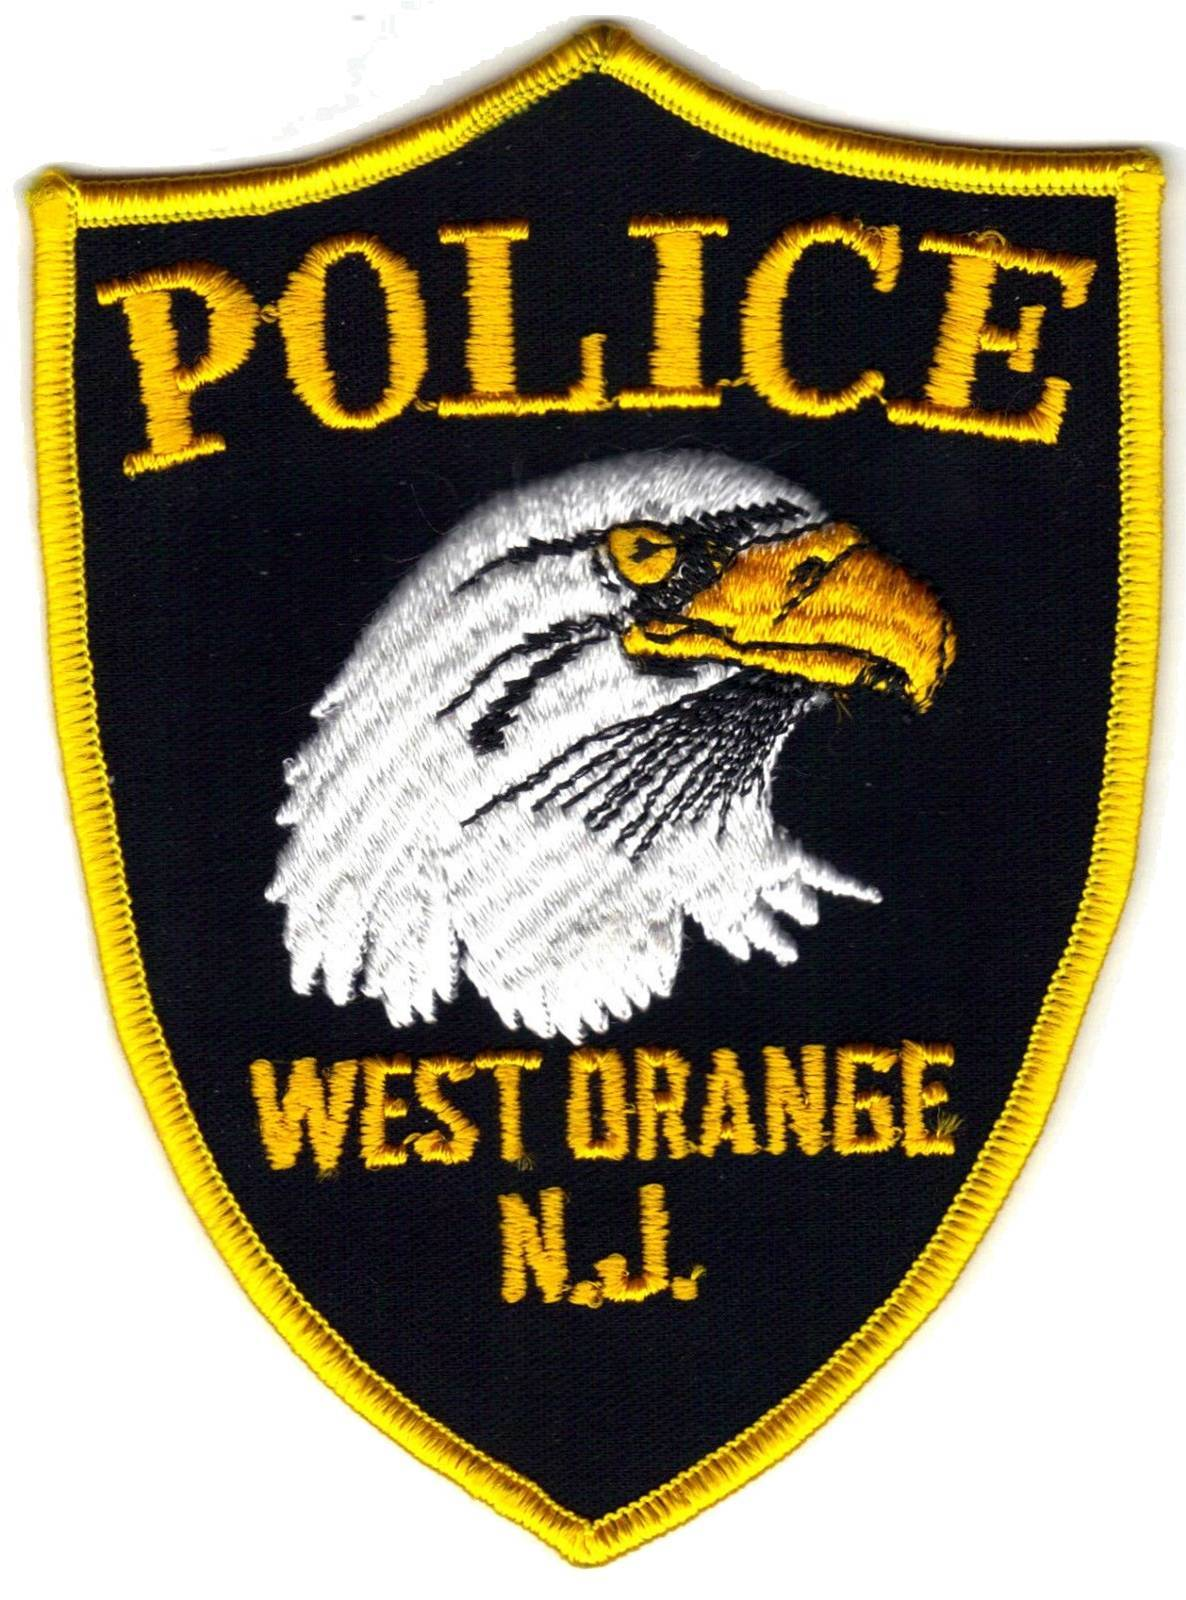 Best_00249ed519b2420f91b1_best_1e2d0272938706939989_west_orange_police_patch